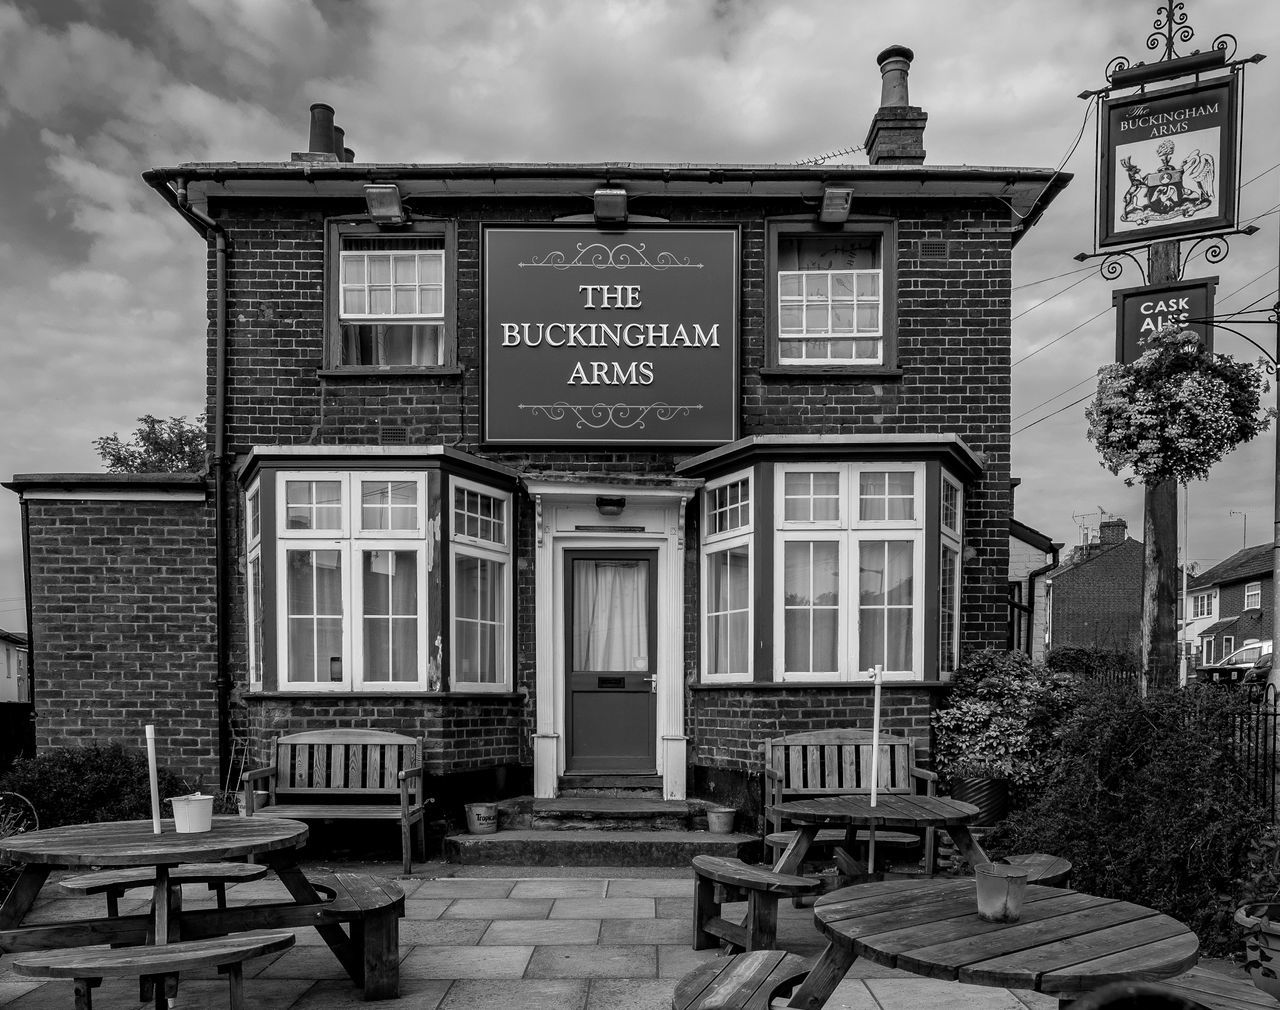 The Buckingham Arms, Old Road, Linslade, Bedfordshire Architecture Fujfilmxt10 Monochrome Photography Black And White Monochrome Urban Bedfordshire Conservation Area Linslade Leighton Buzzard Bedfordshire Pubs Pubs